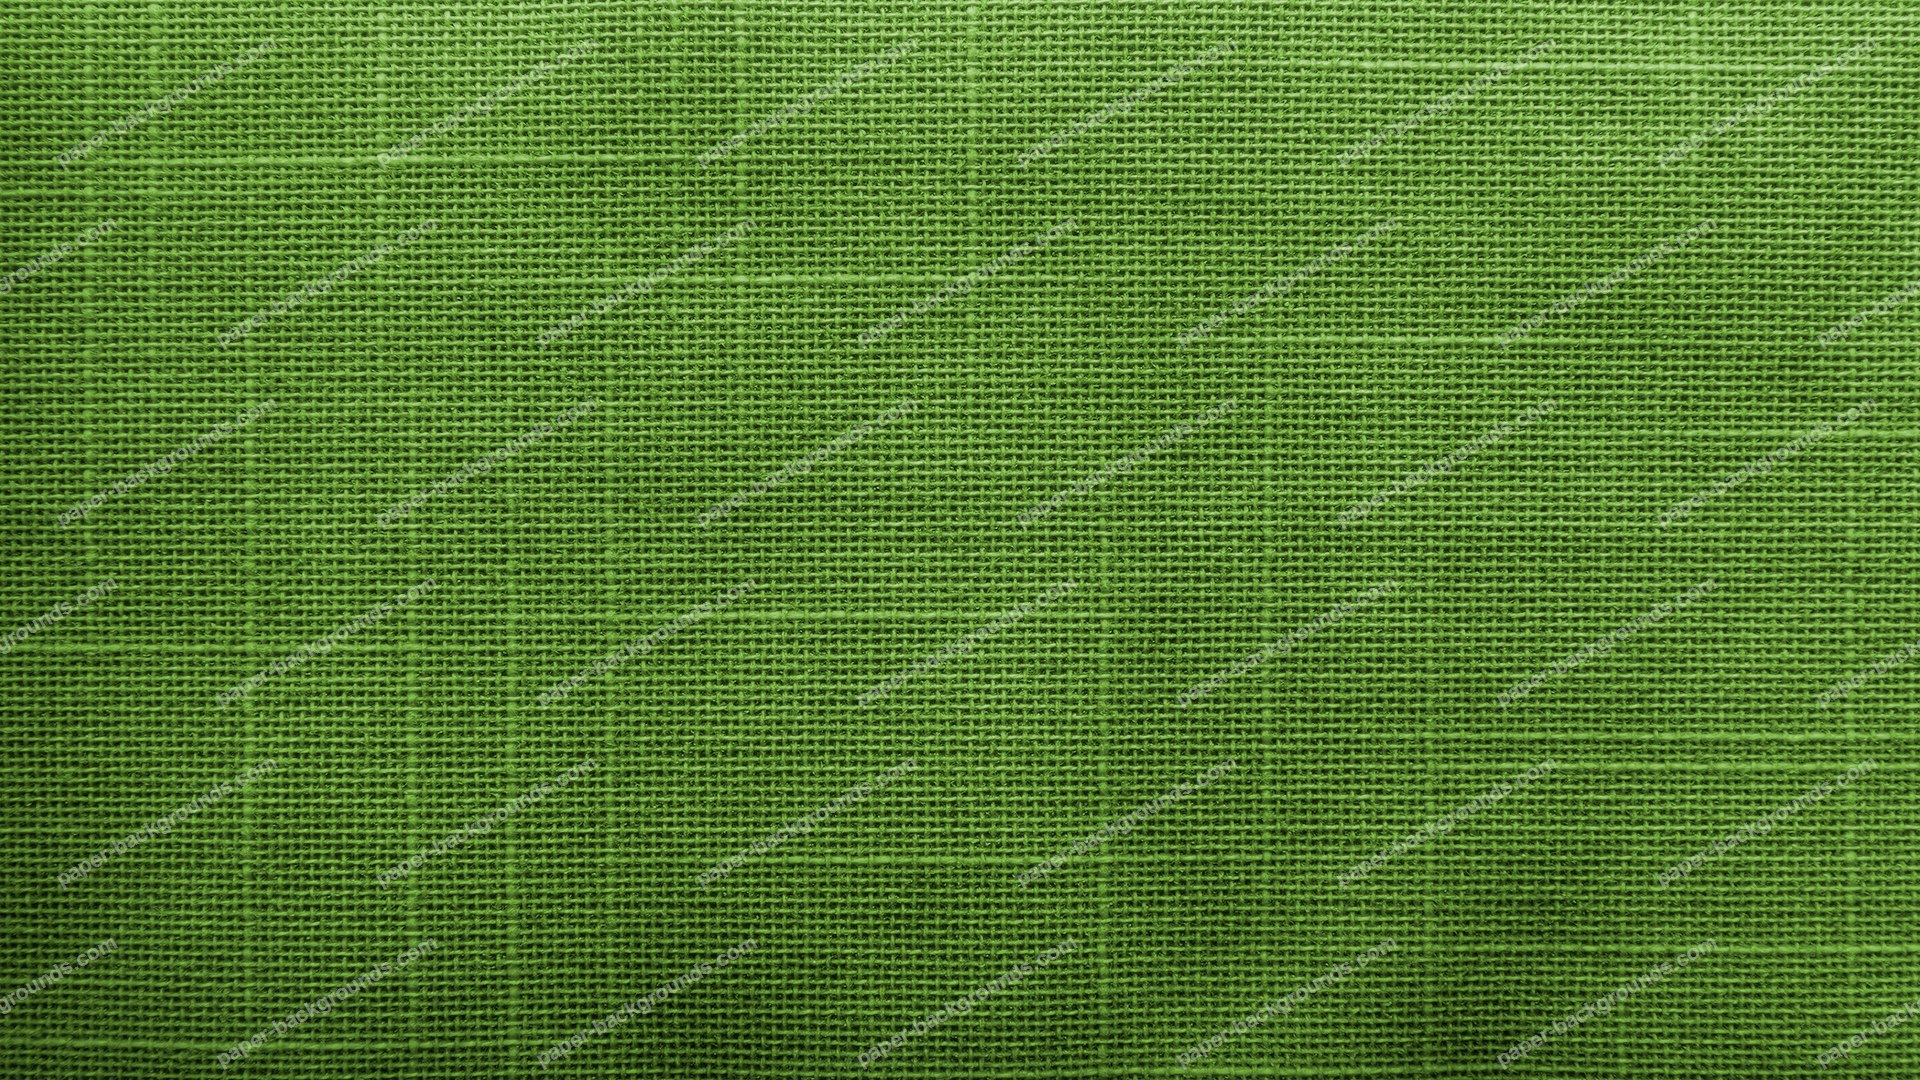 Green bed sheets texture - Green Canvas Fabric Texture Hd 1920 X 1080p